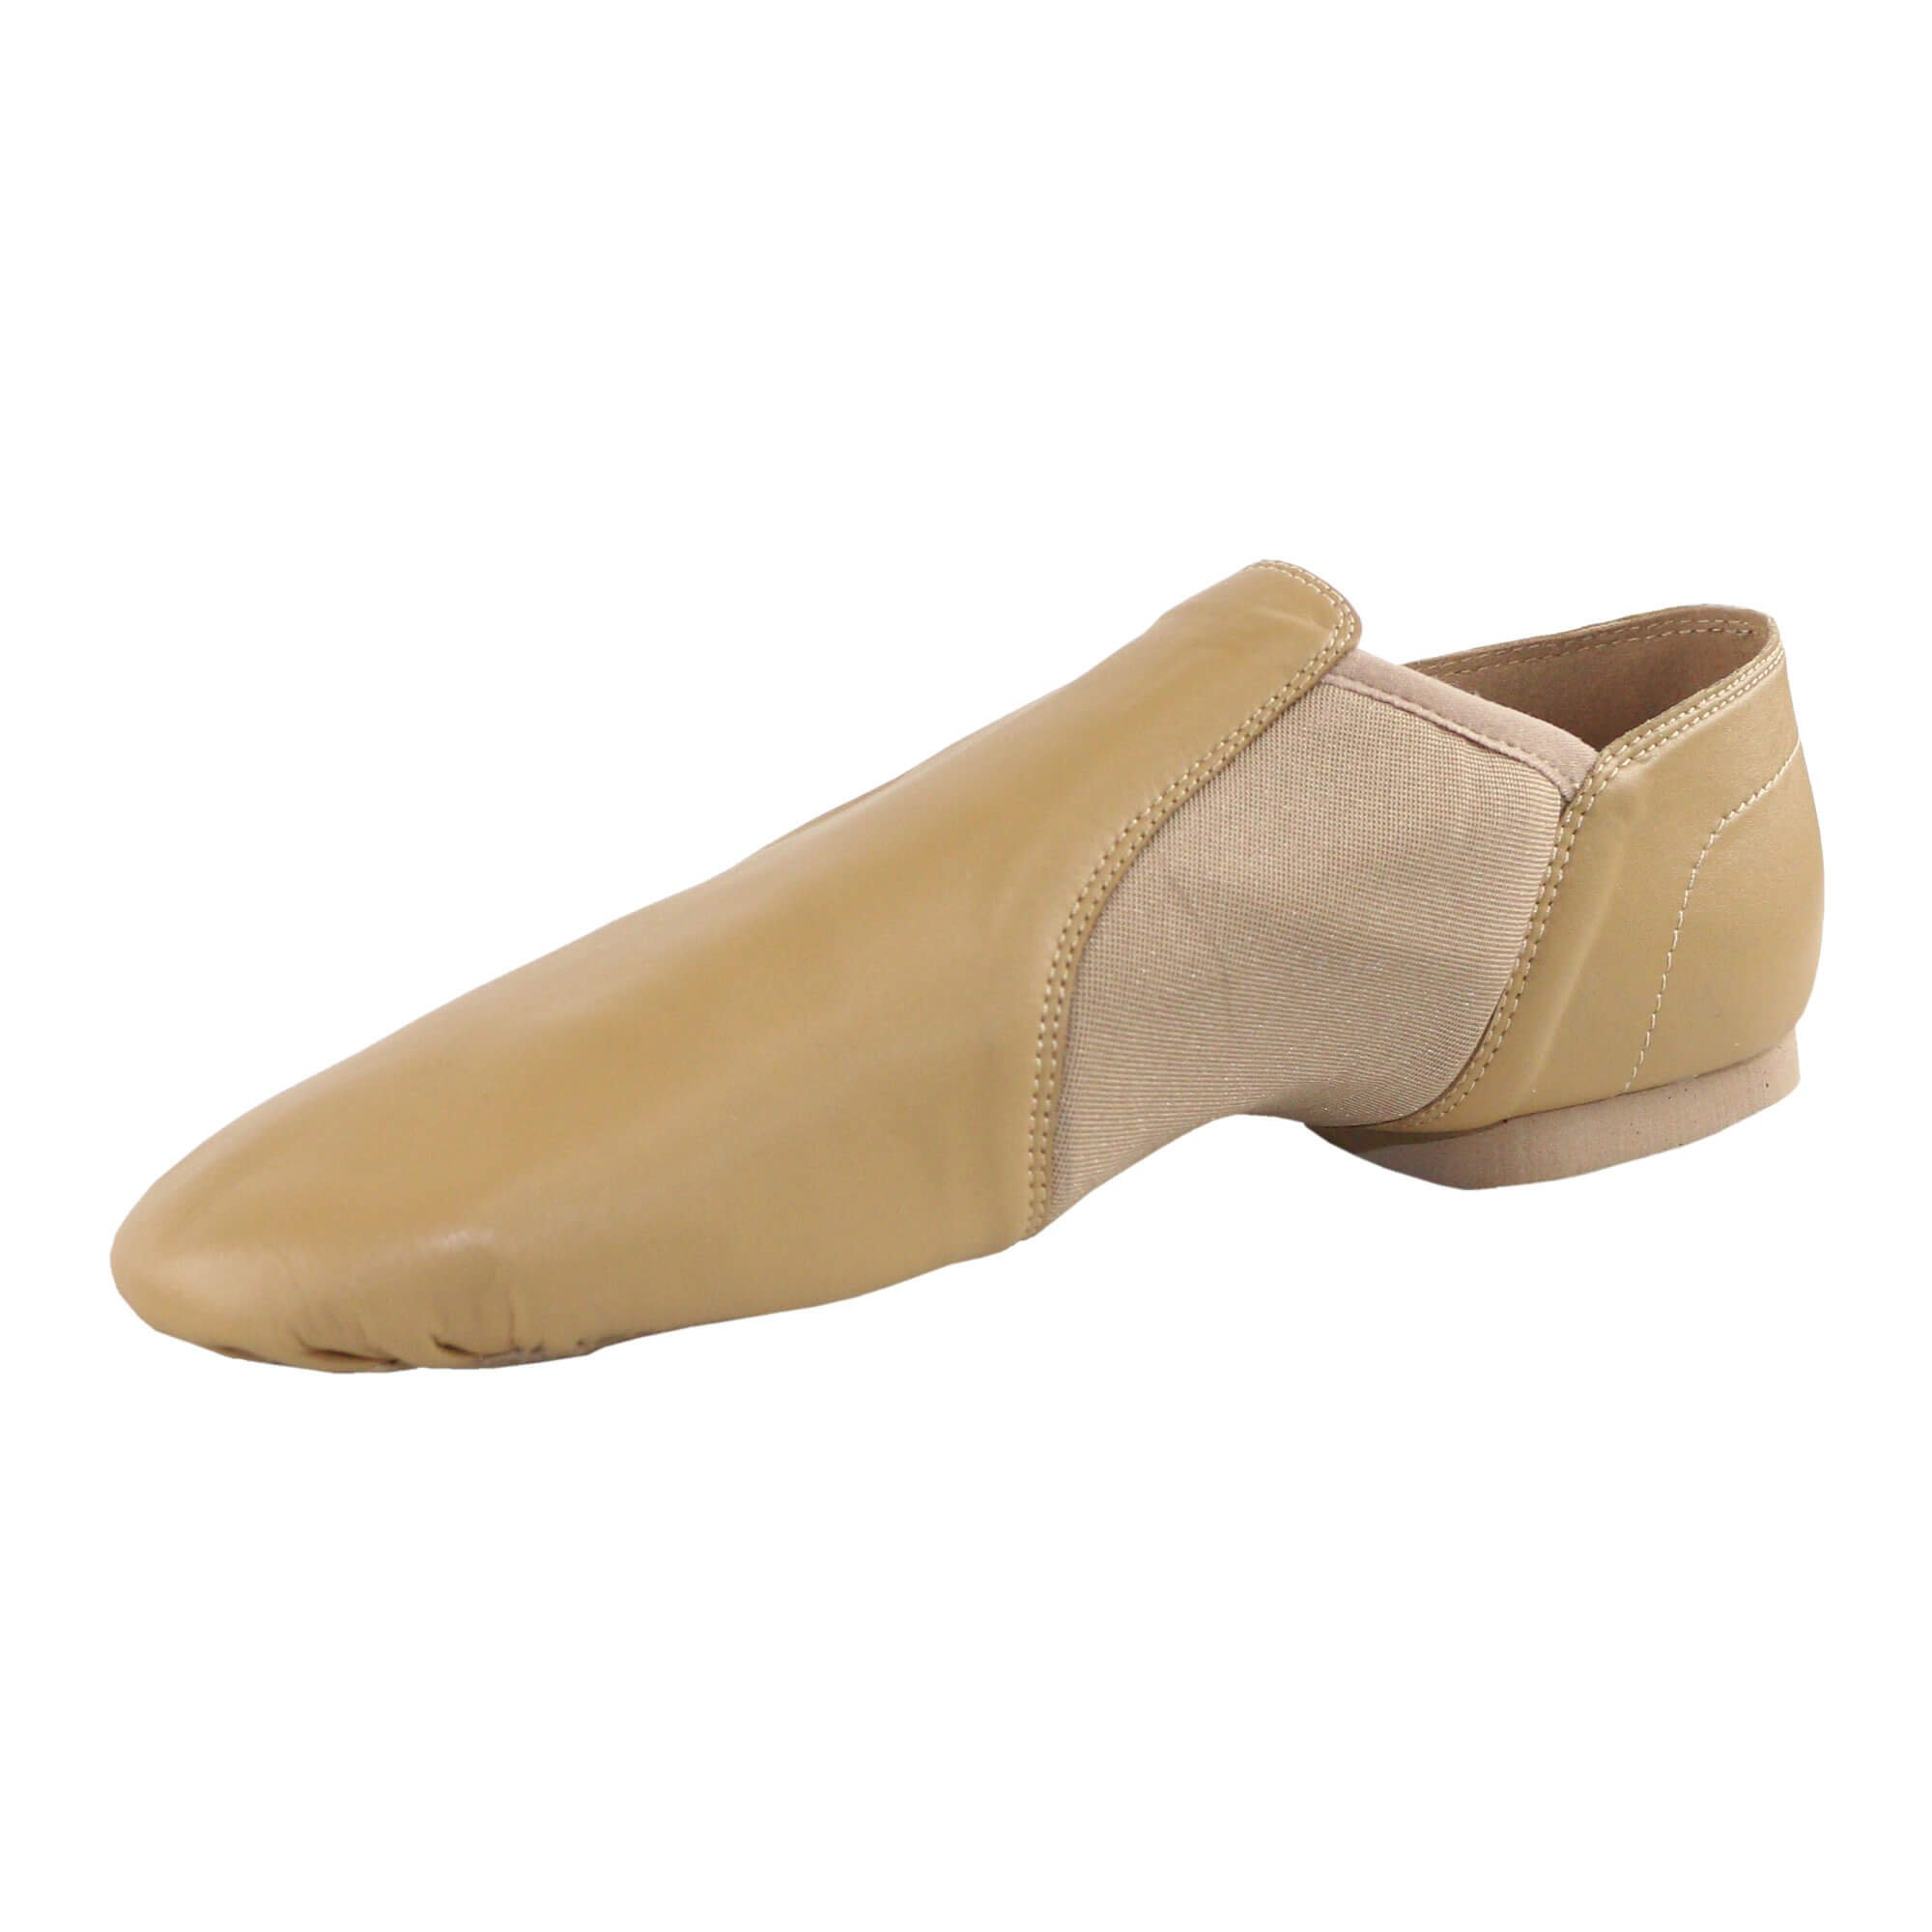 Danzcue Adult Leather Upper Slip-On Jazz Dance Shoes - Click Image to Close